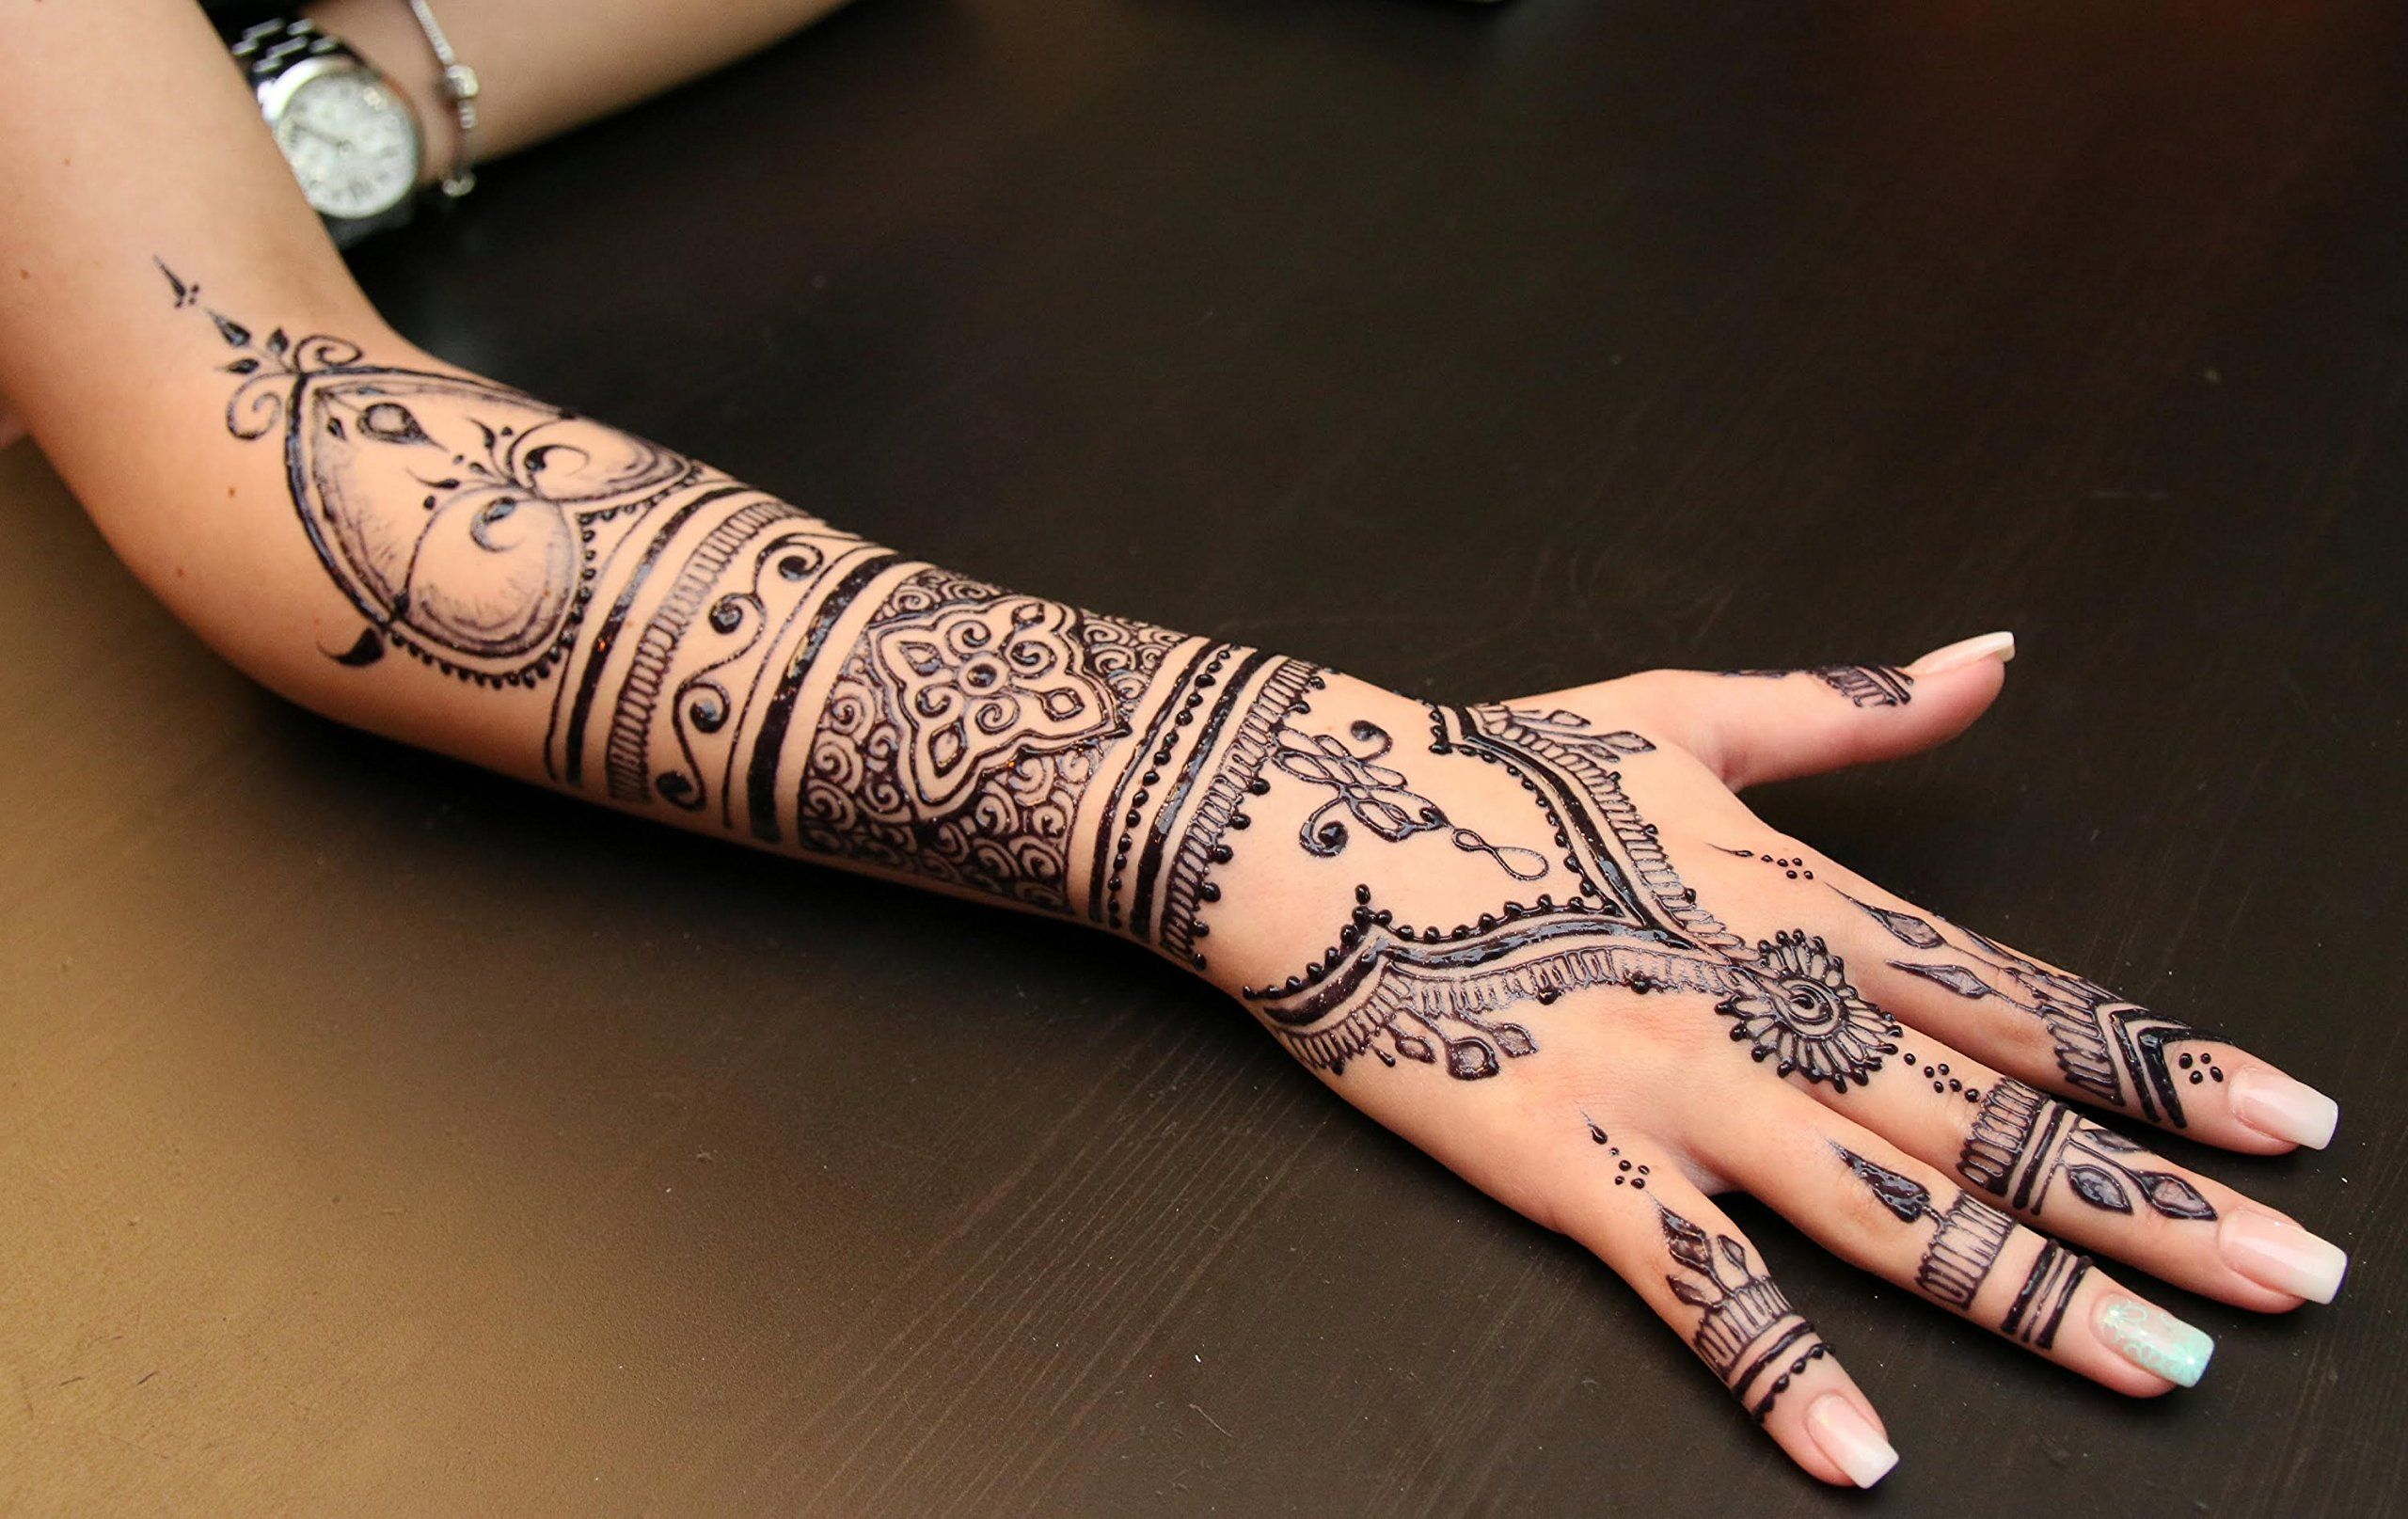 All Natural Earth Henna Tattoo Freestyle Kit 1oz Semipermanent Temporary Tattoo Naturea S Ink For More In Jagua Tattoo Henna Tattoo Designs Tattoo Prices